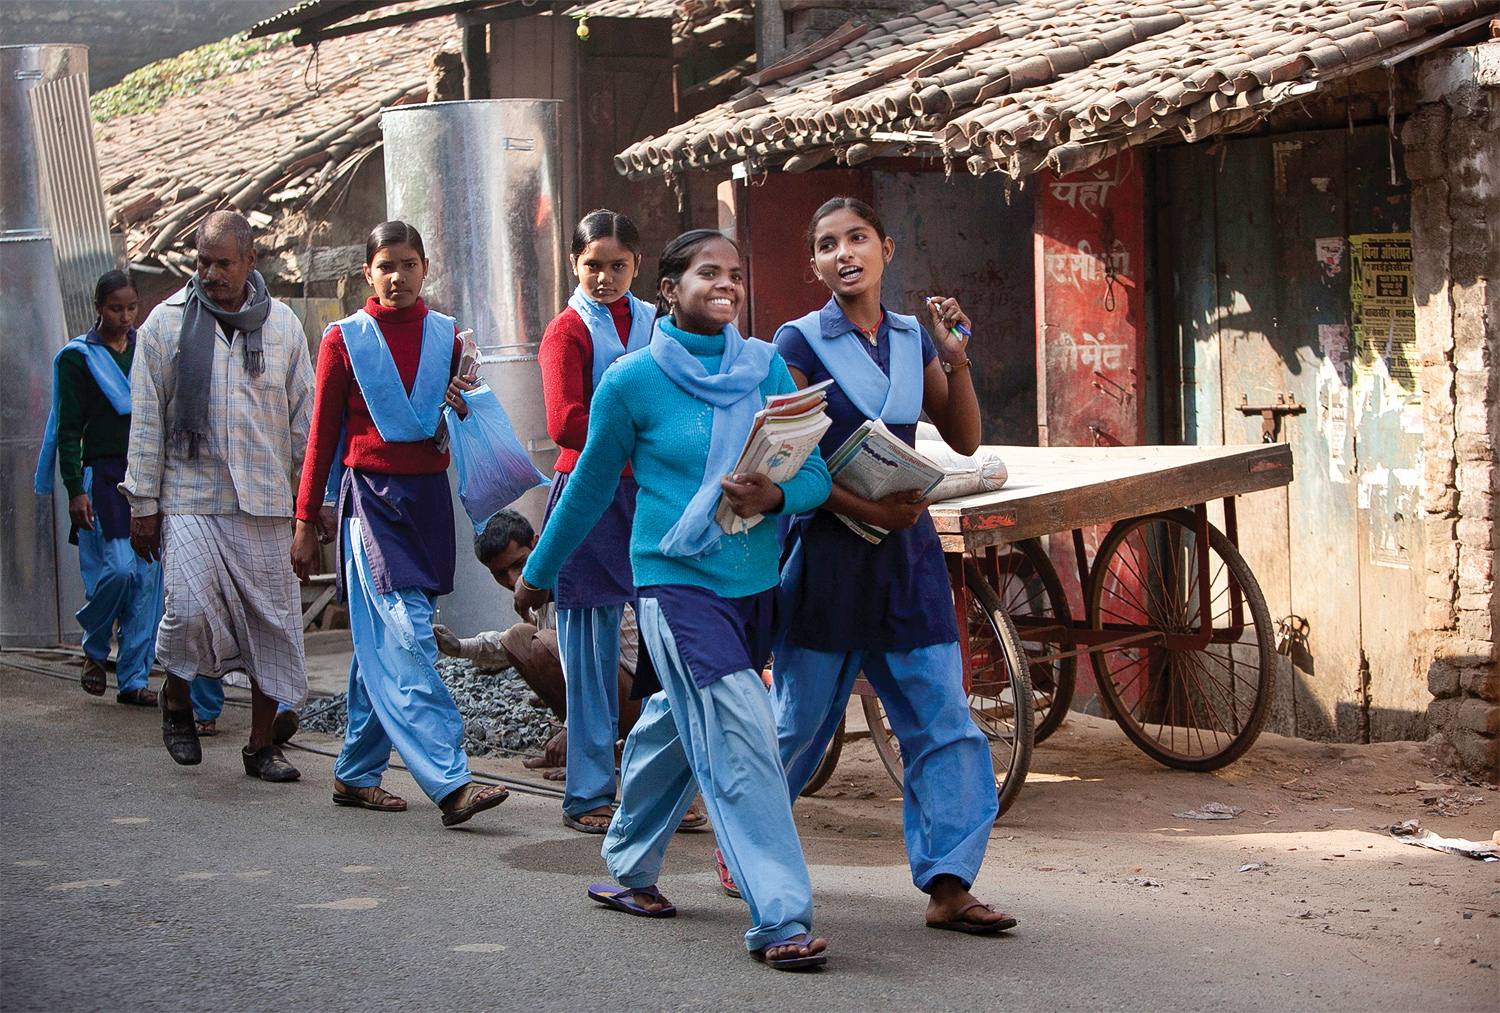 Girls walking to school through the town center in rural Bihar, 2013. (All photographs by Allison Joyce/Redux)